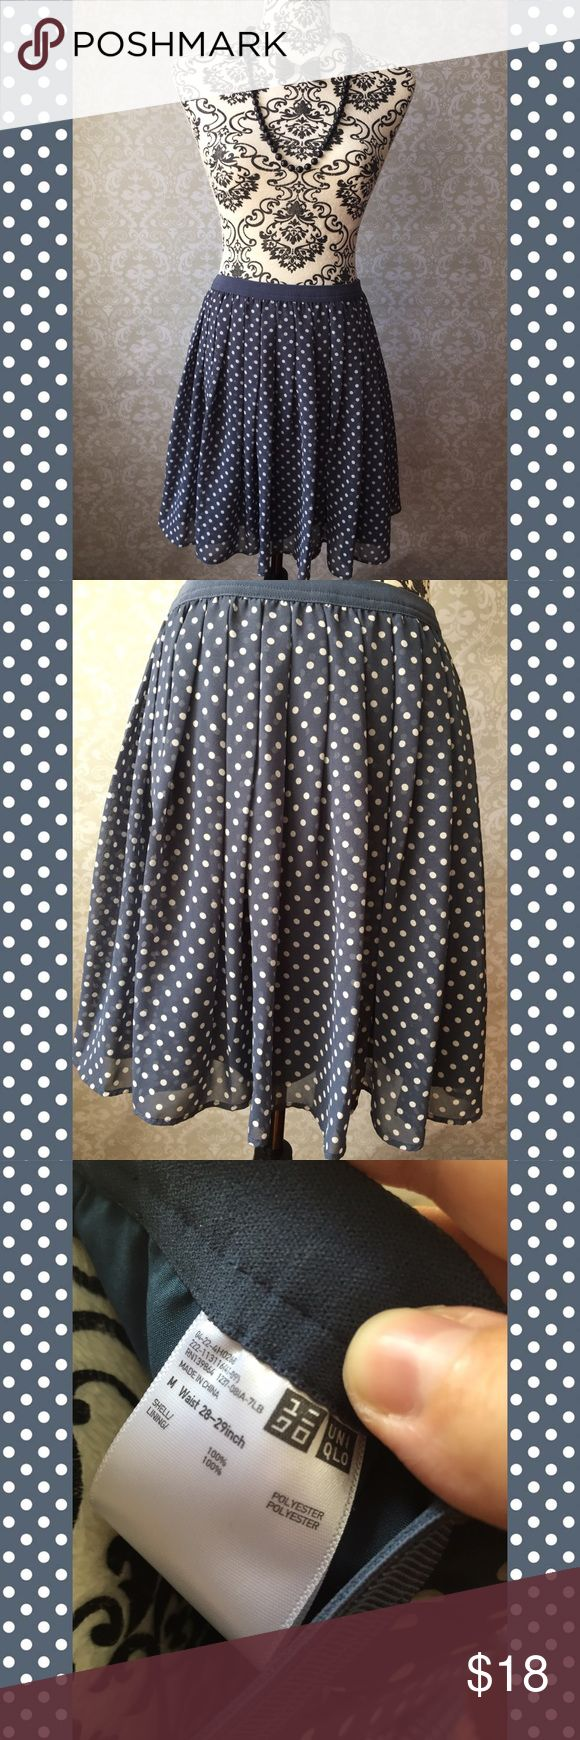 """Uniqlo blue polka dot skater skirt Flouncy dual-layer Uniqlo skirt in a denim/dusty blue. Semi-sheer top layer features polka dot print, and base layer is solid blue. Lots of movement. Worn once. Tag gives waist measurement as 28""""-29"""", but I think it has a little flexibility size-wise because of the elastic waist. Solid color elastic blue waistband. Excellent condition. I have a very similar purple Uniqlo skirt listed. Uniqlo Skirts Circle & Skater"""